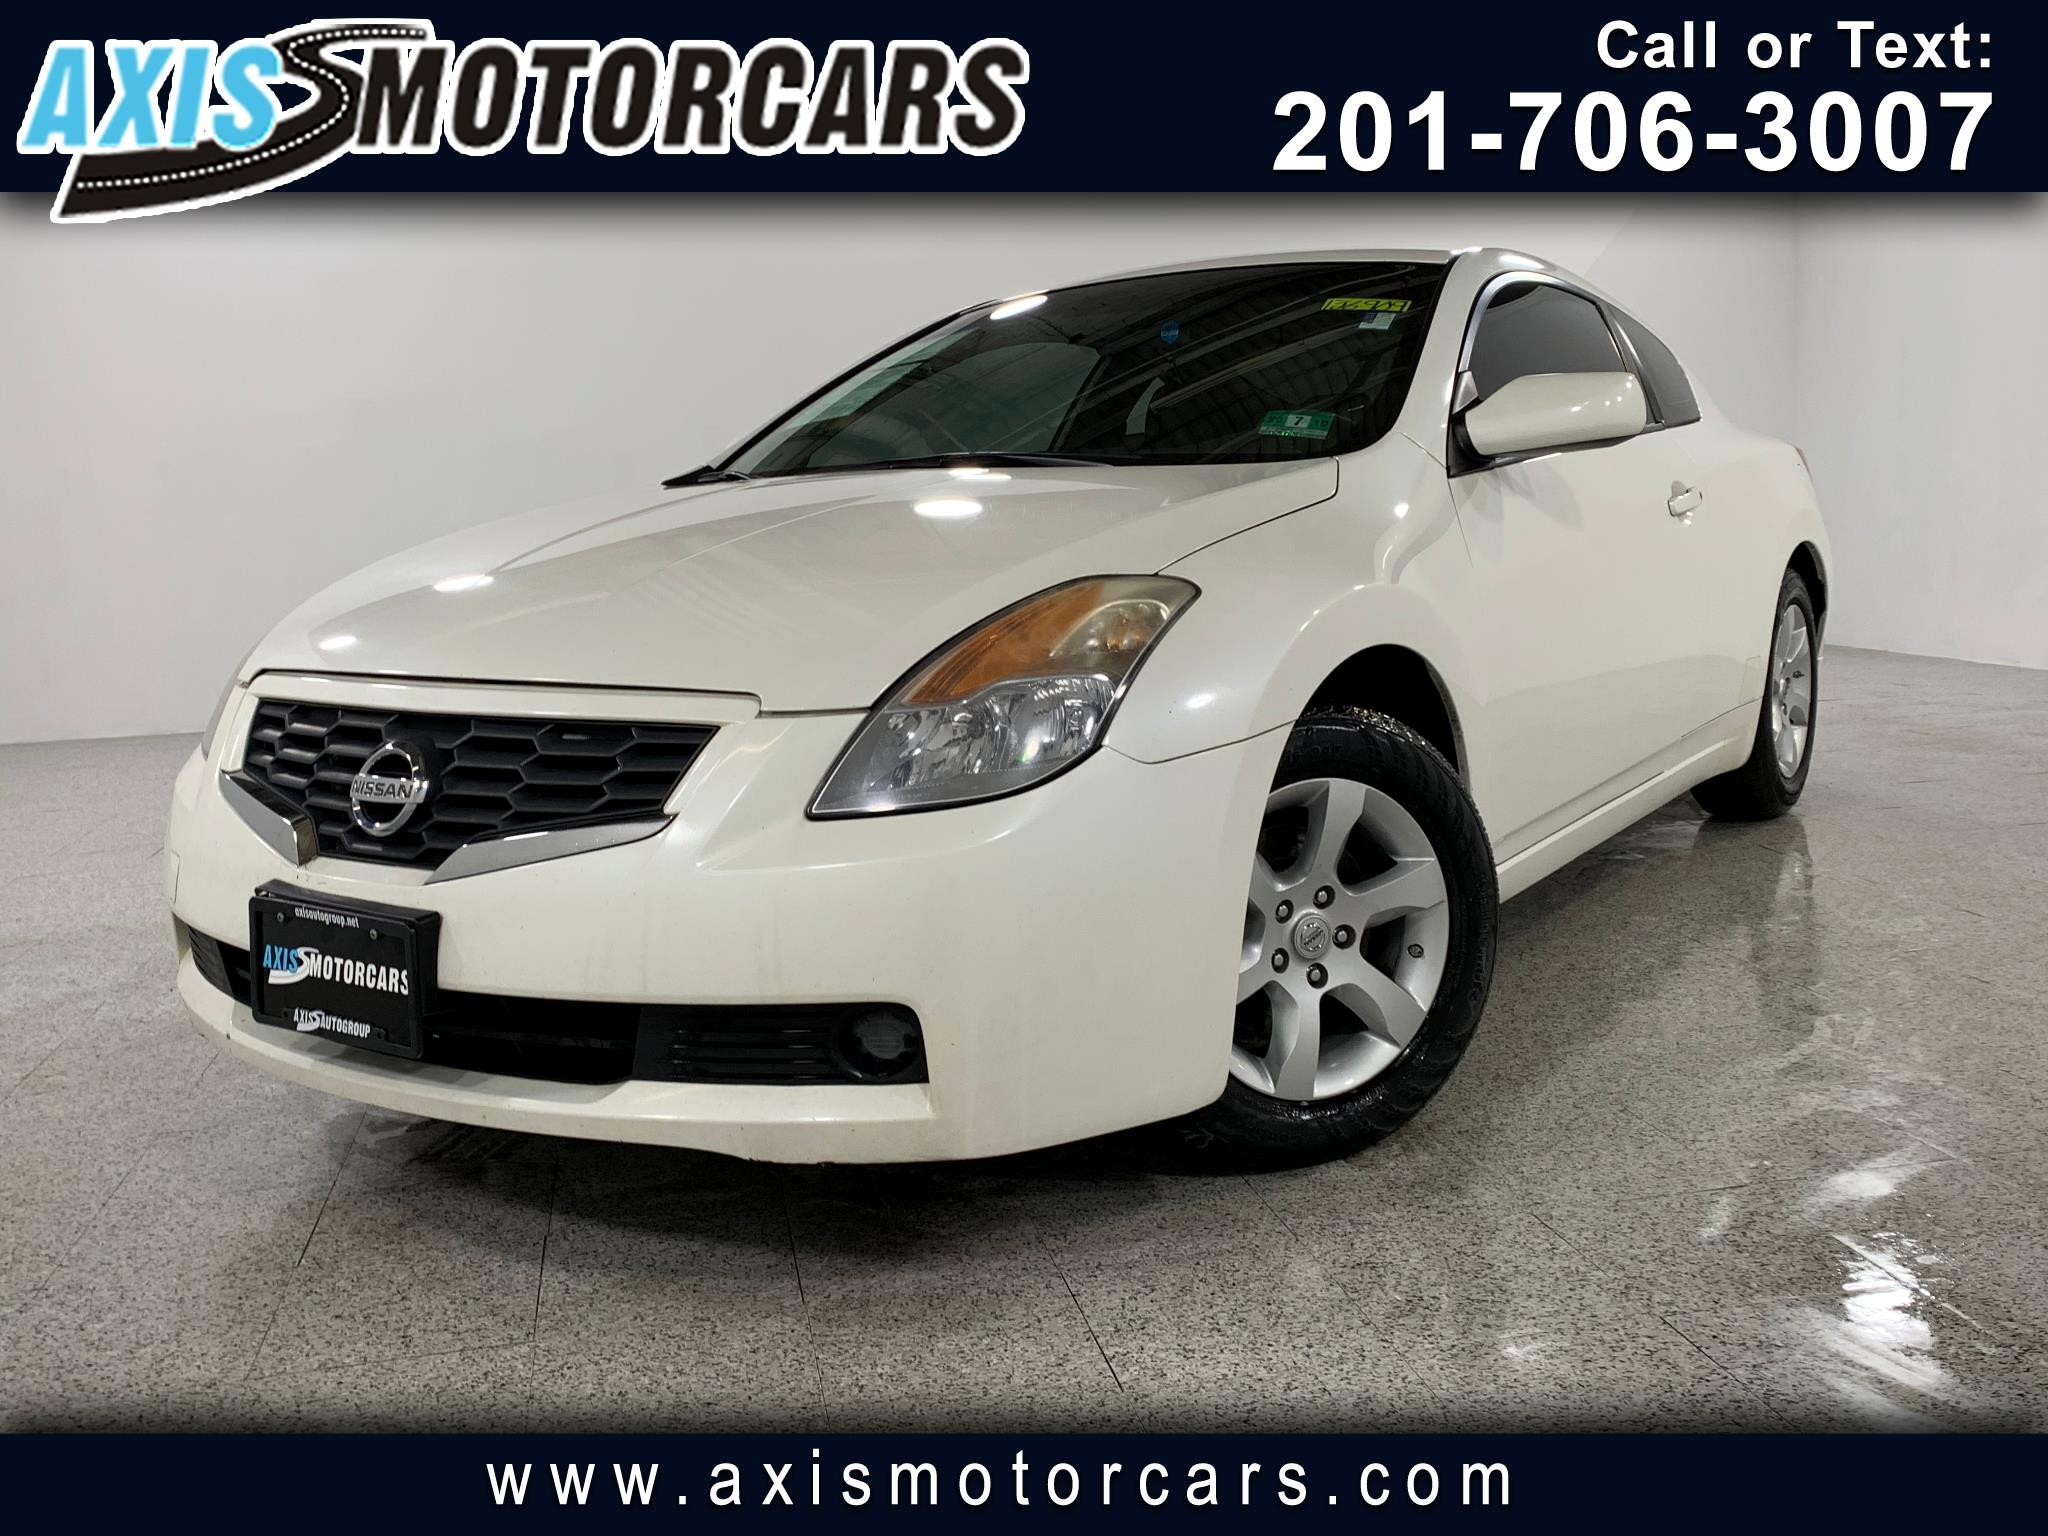 2008 Nissan Altima 2dr Cpe I4 CVT 2.5 S w/Sun Roof